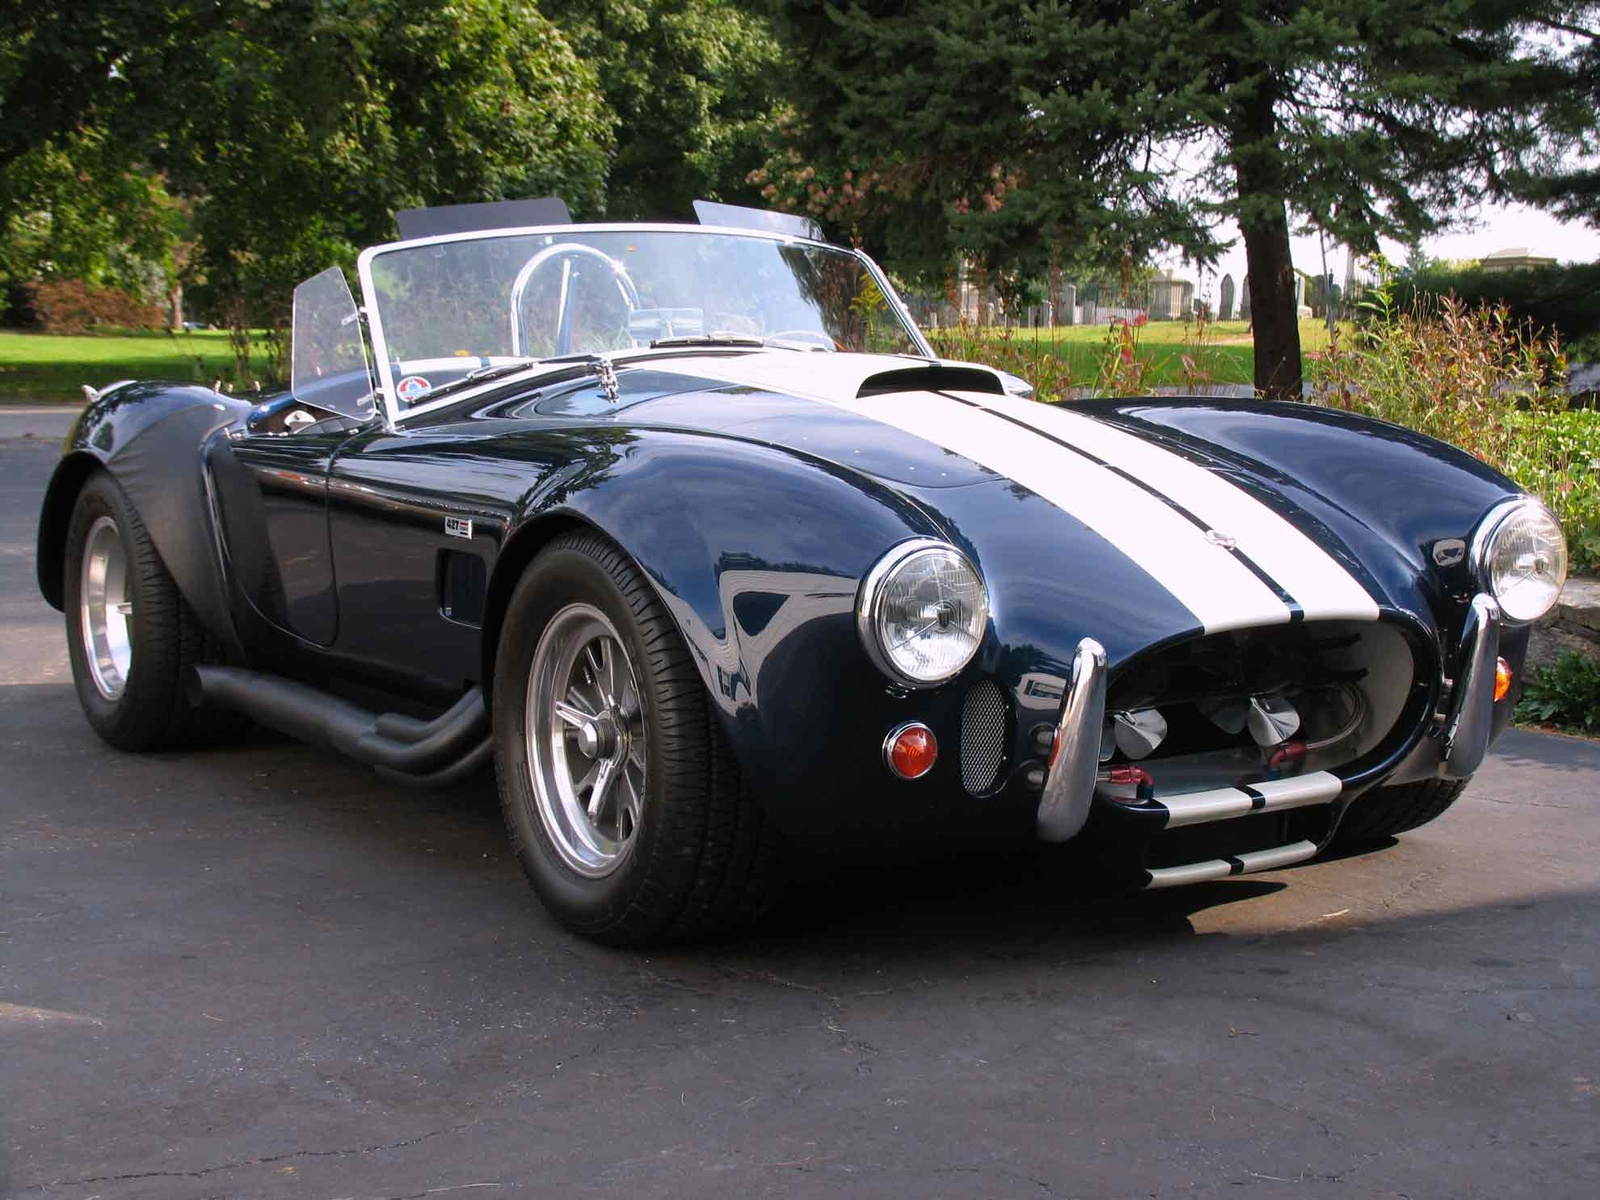 1968 shelby cobra classic automobiles. Black Bedroom Furniture Sets. Home Design Ideas